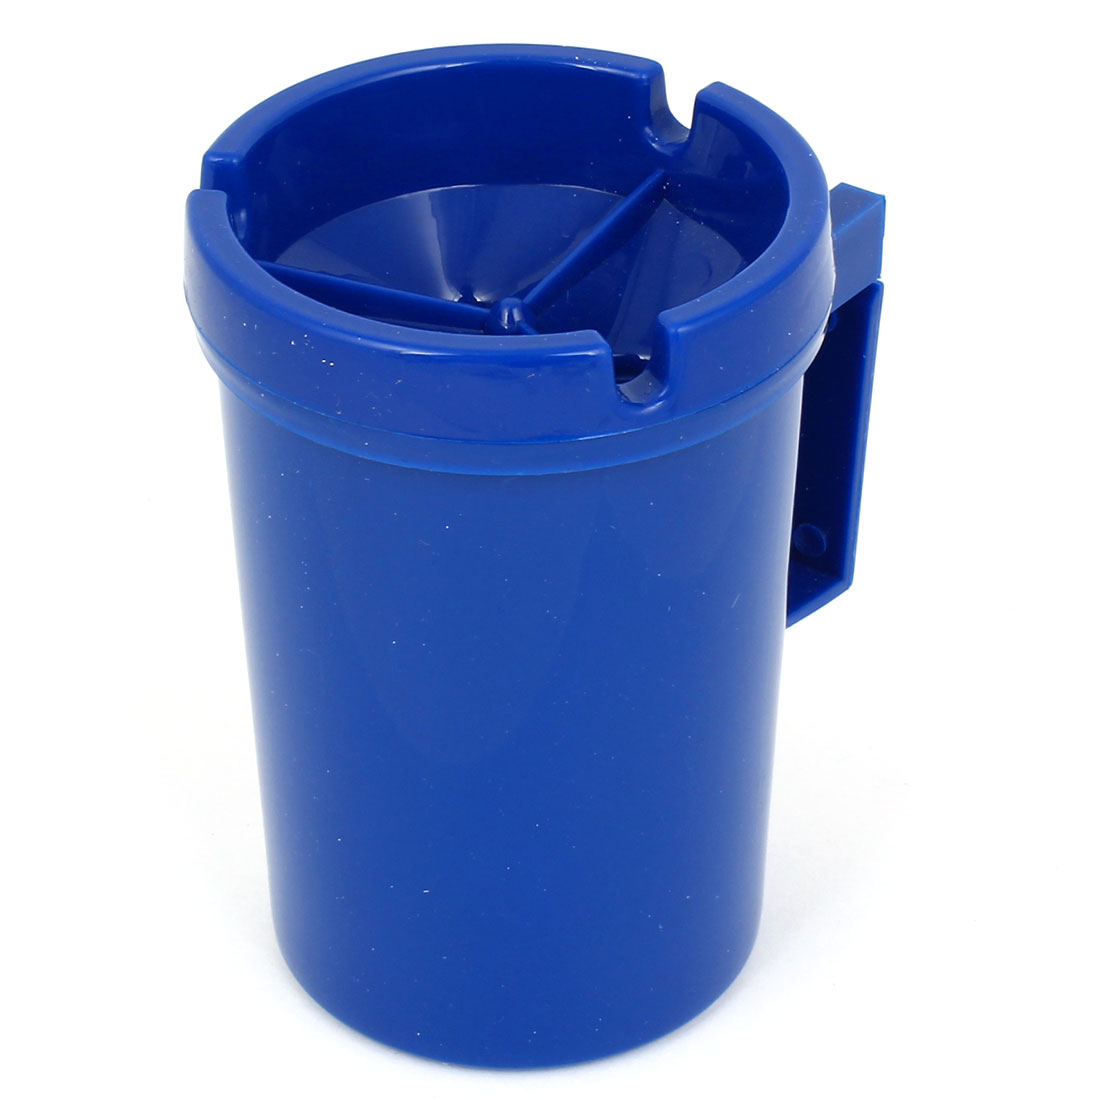 Auto Car Blue Plastic Clip 3 Groove Cup Shape Cigarette Holder Container Ashtray